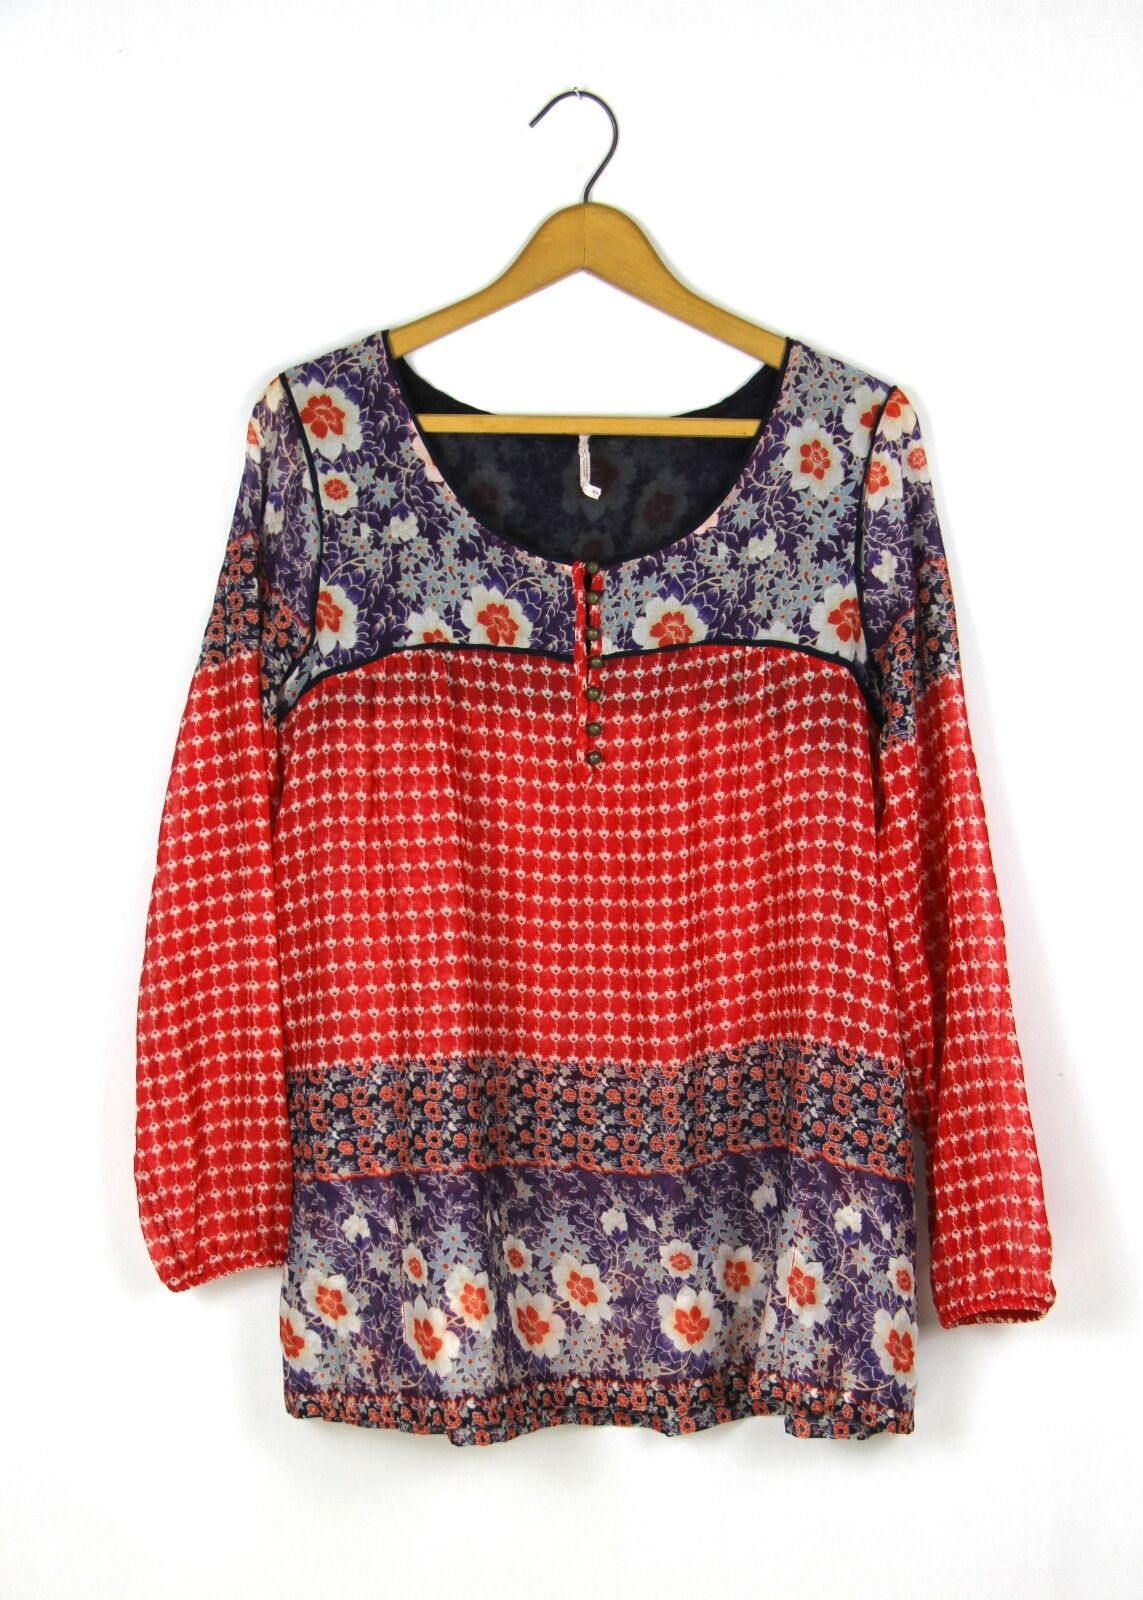 Free People Sz S Tunic Top rot+lila Floral Print Cotton Long Sleeve Flowy EUC